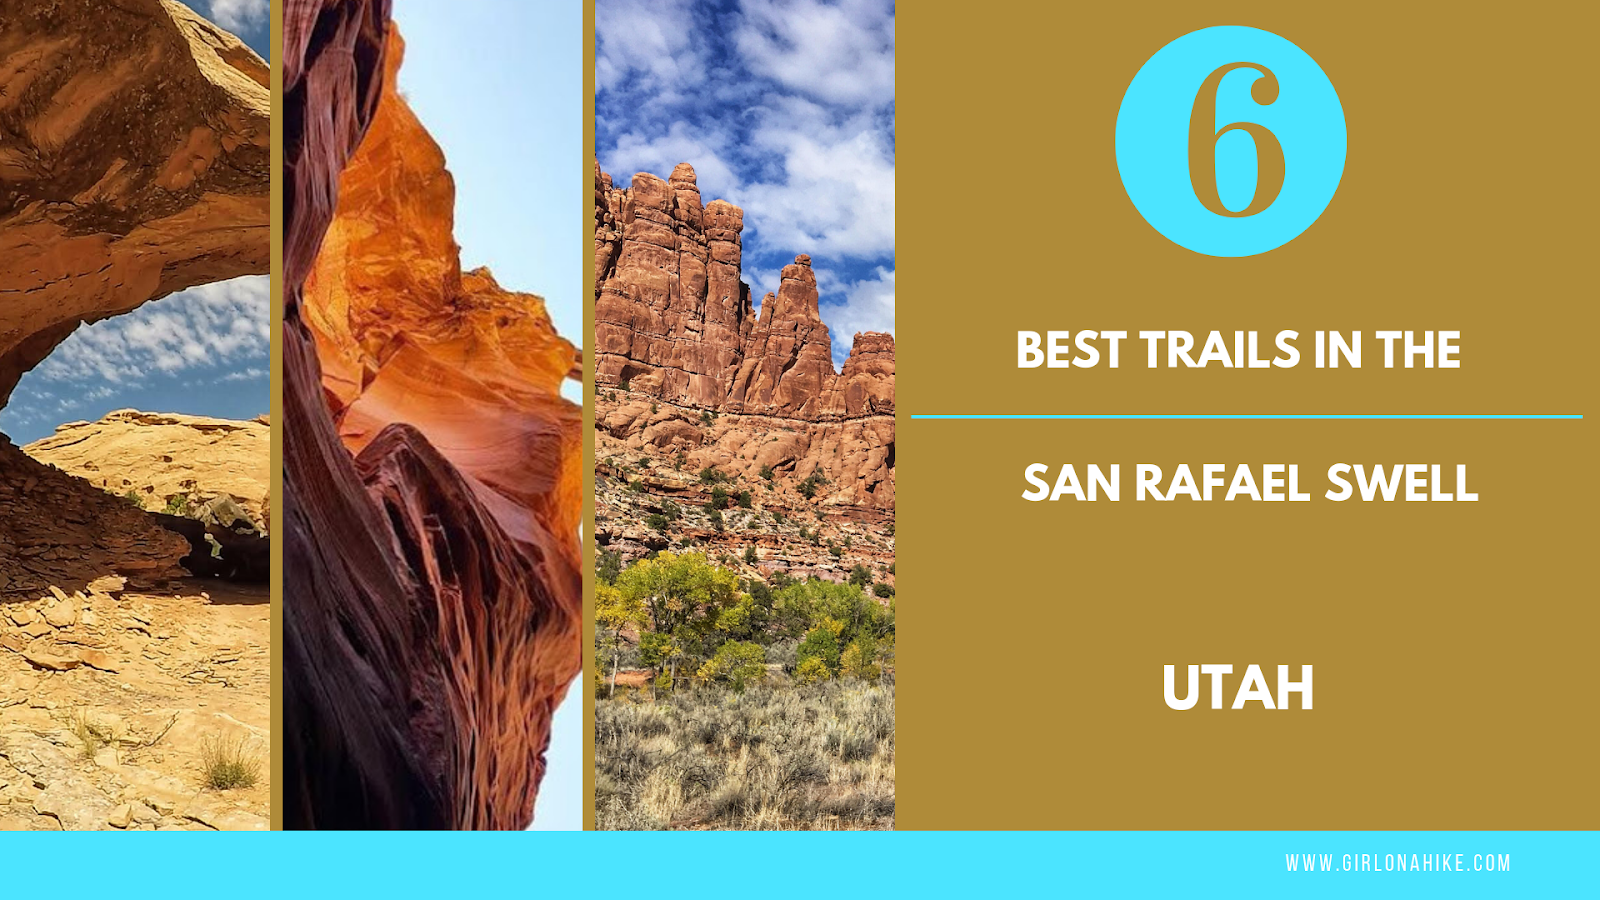 The 6 Best Trails in the San Rafael Swell